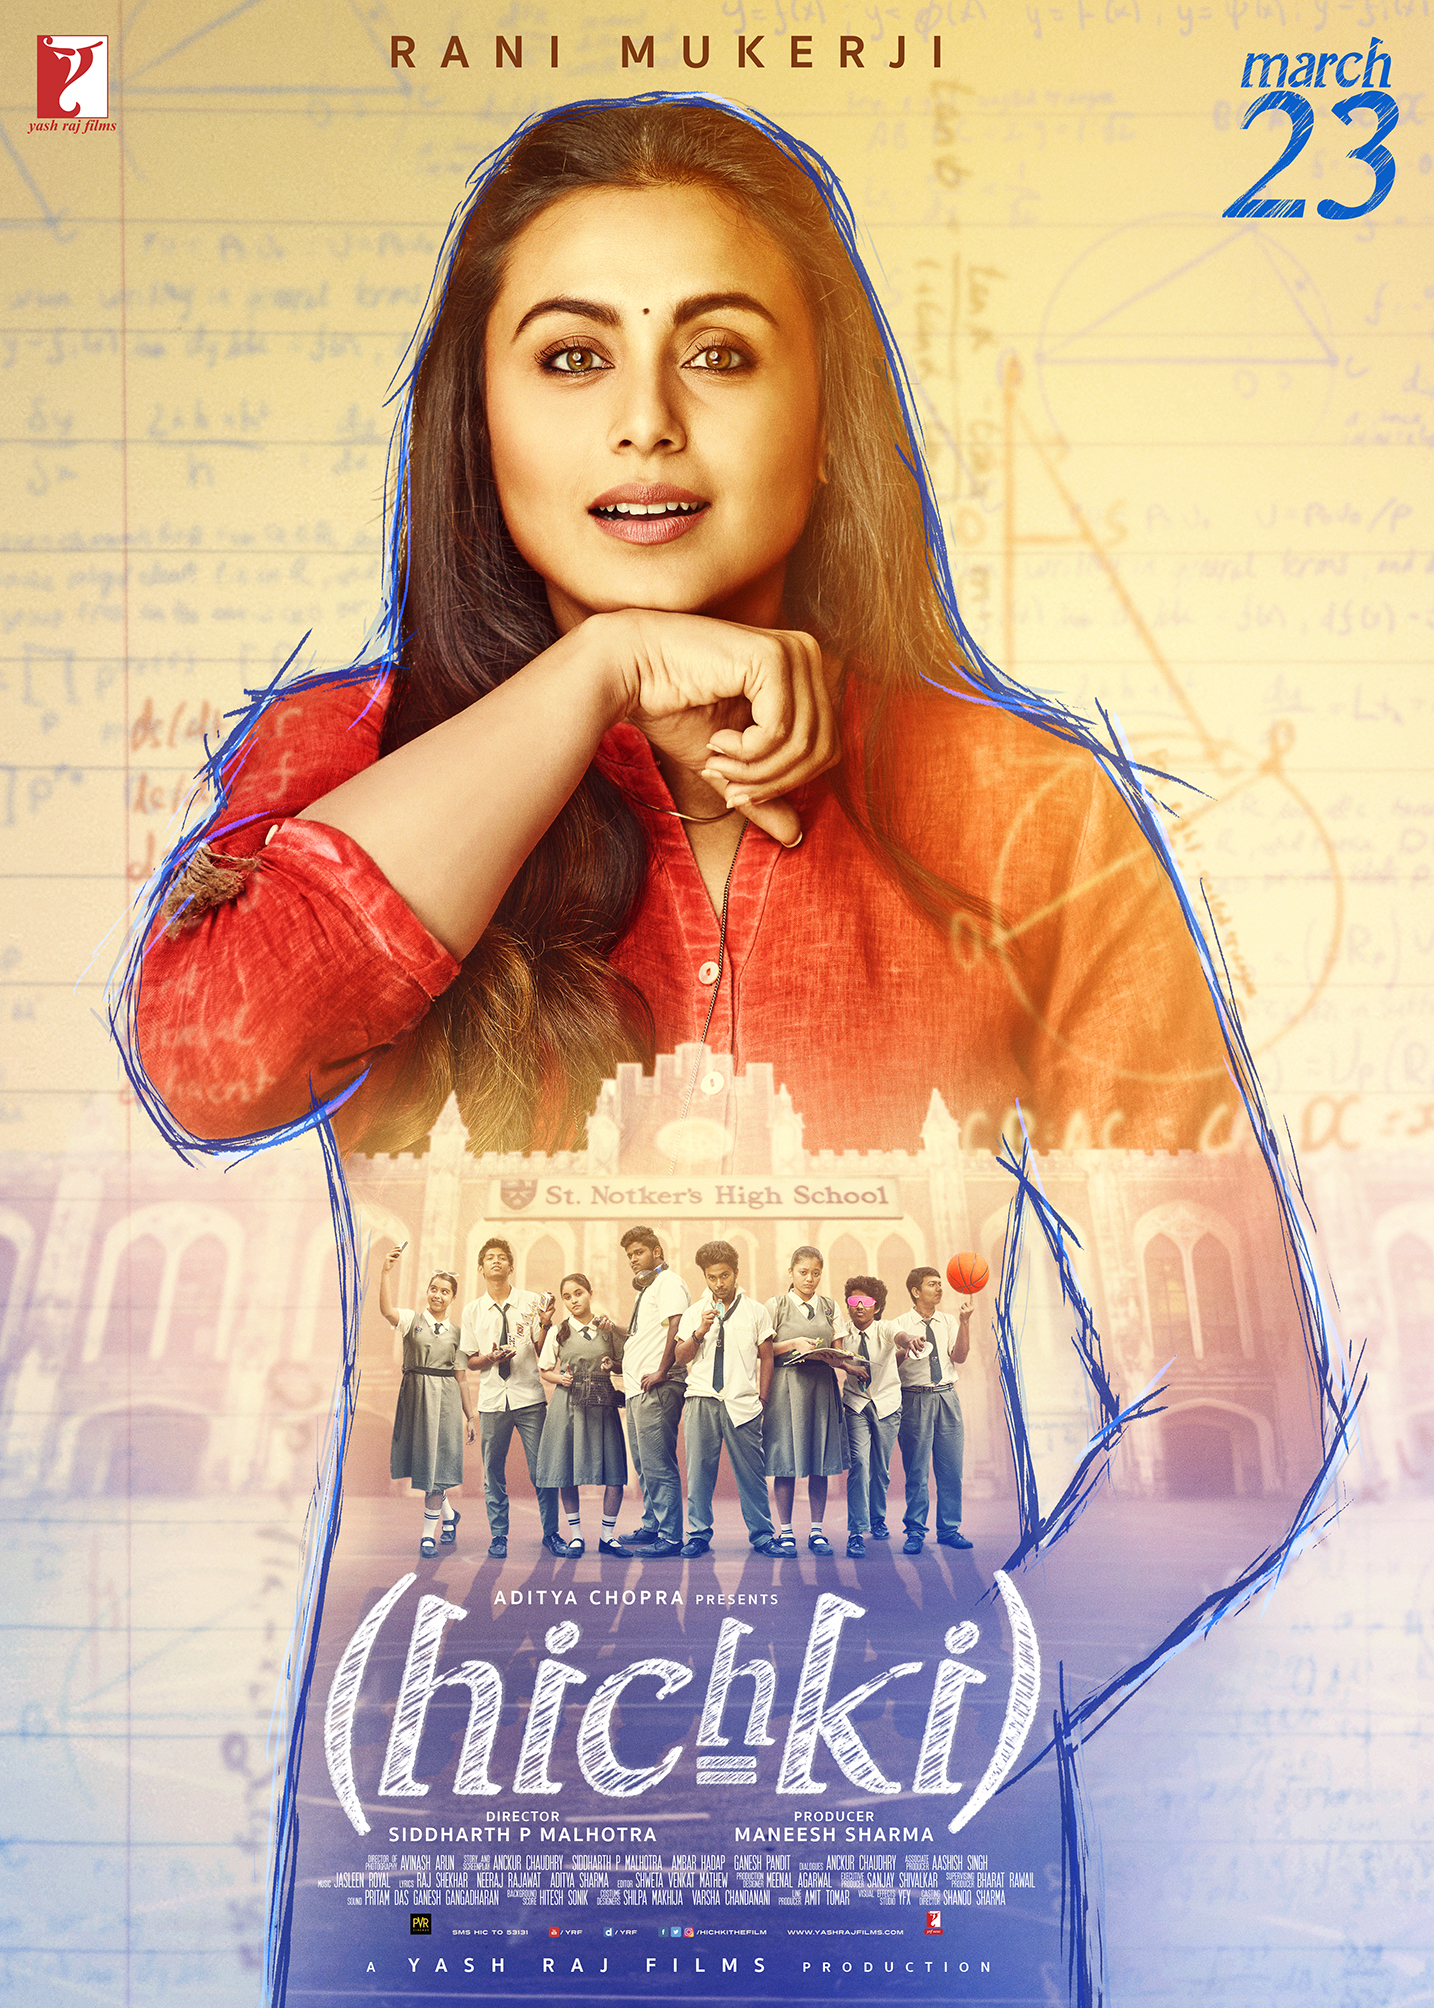 Hichki presents a positive and inspiring story about a woman who turns her biggest weakness into her biggest strength.